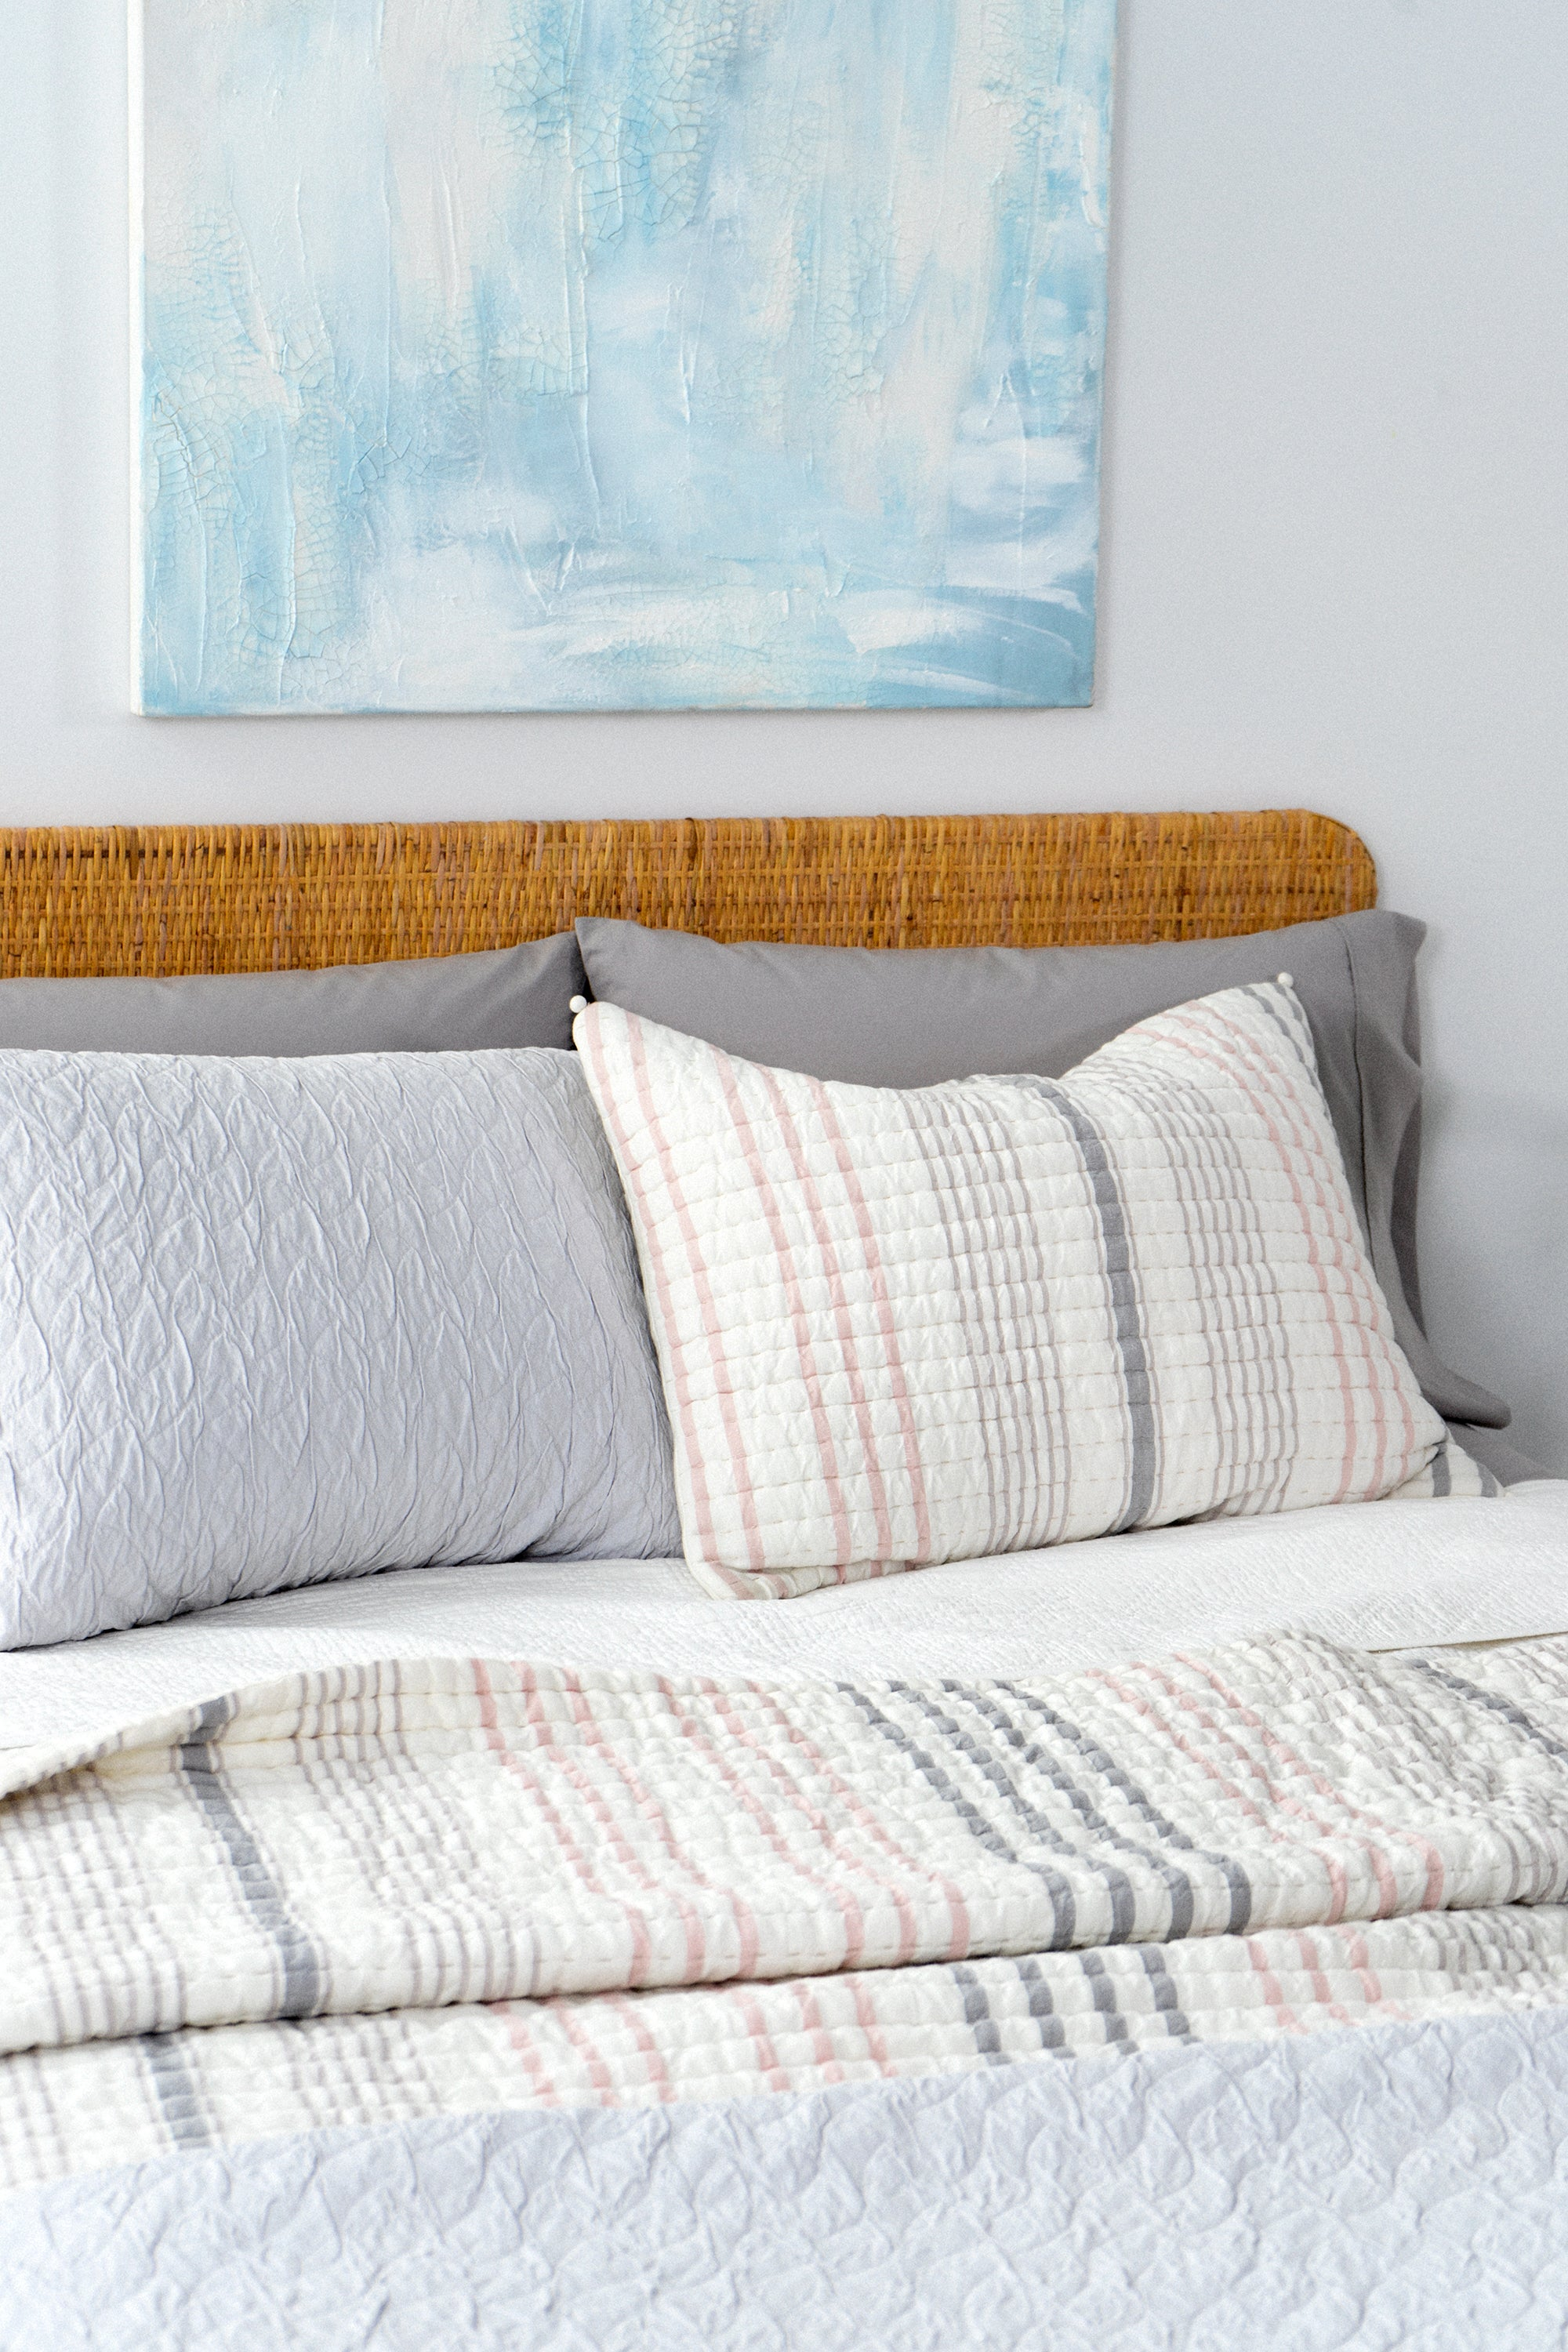 White and gray striped bedding